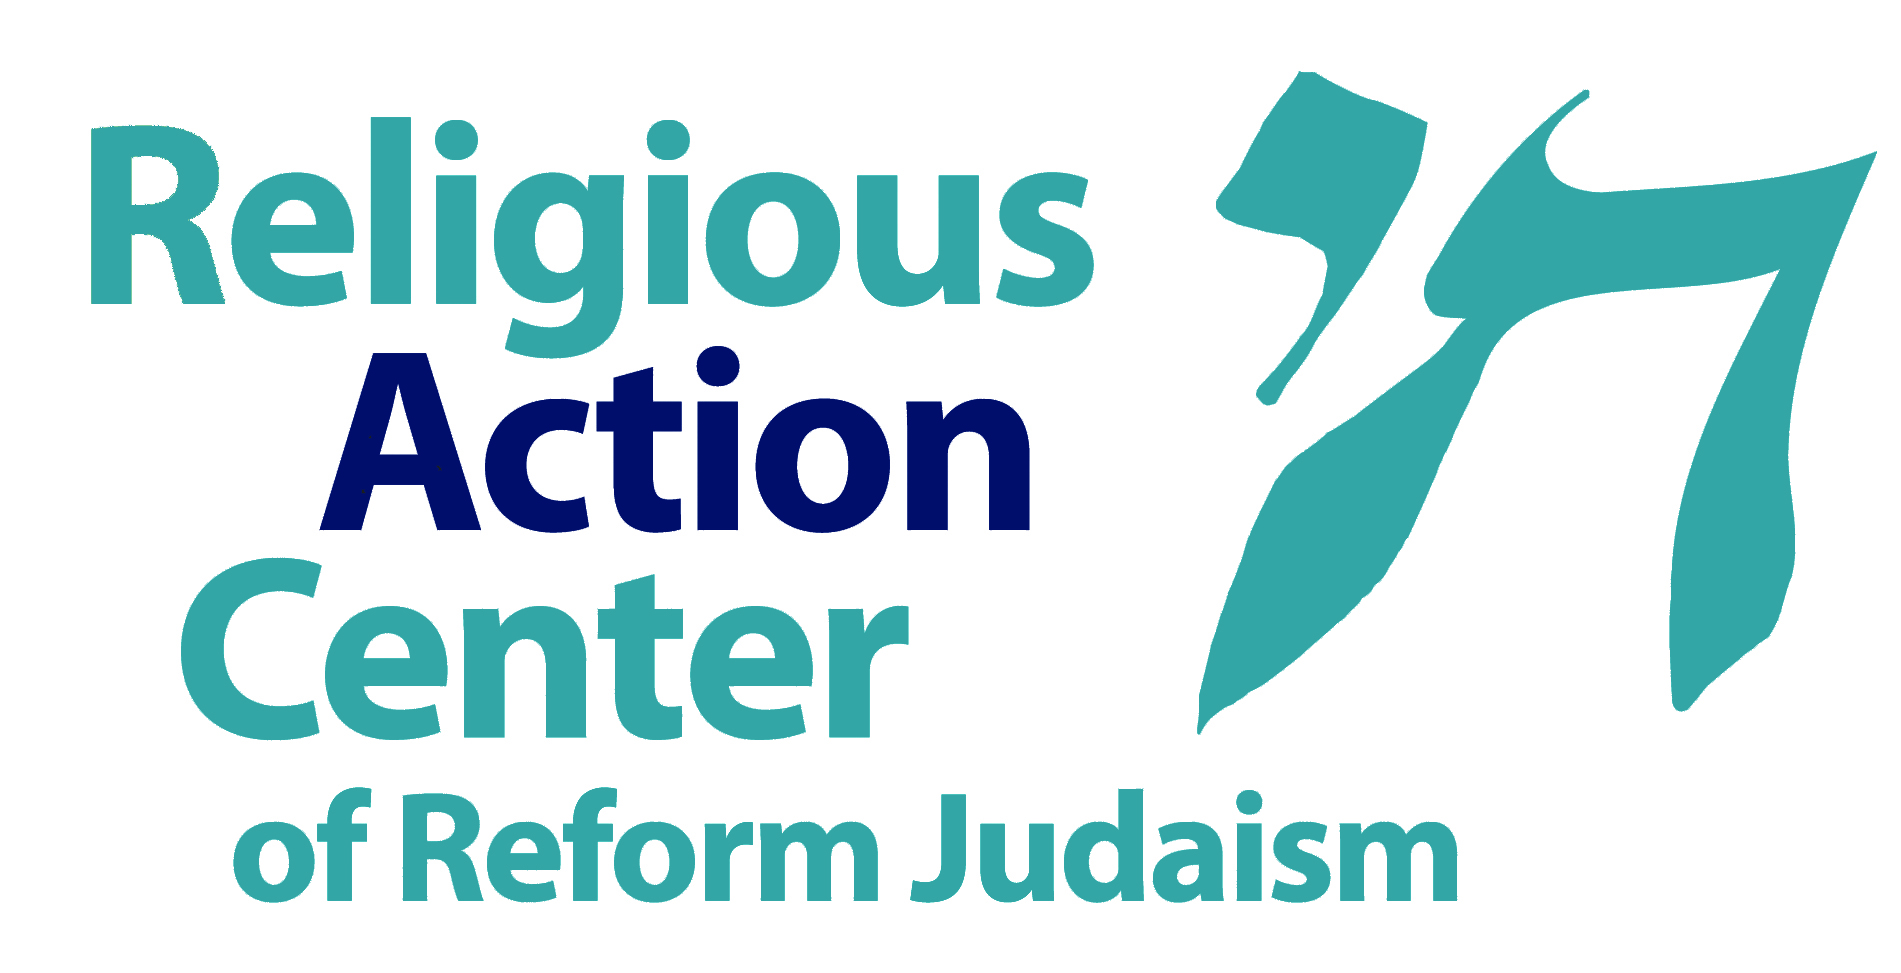 Religious Action Center of Reform Judaism logo